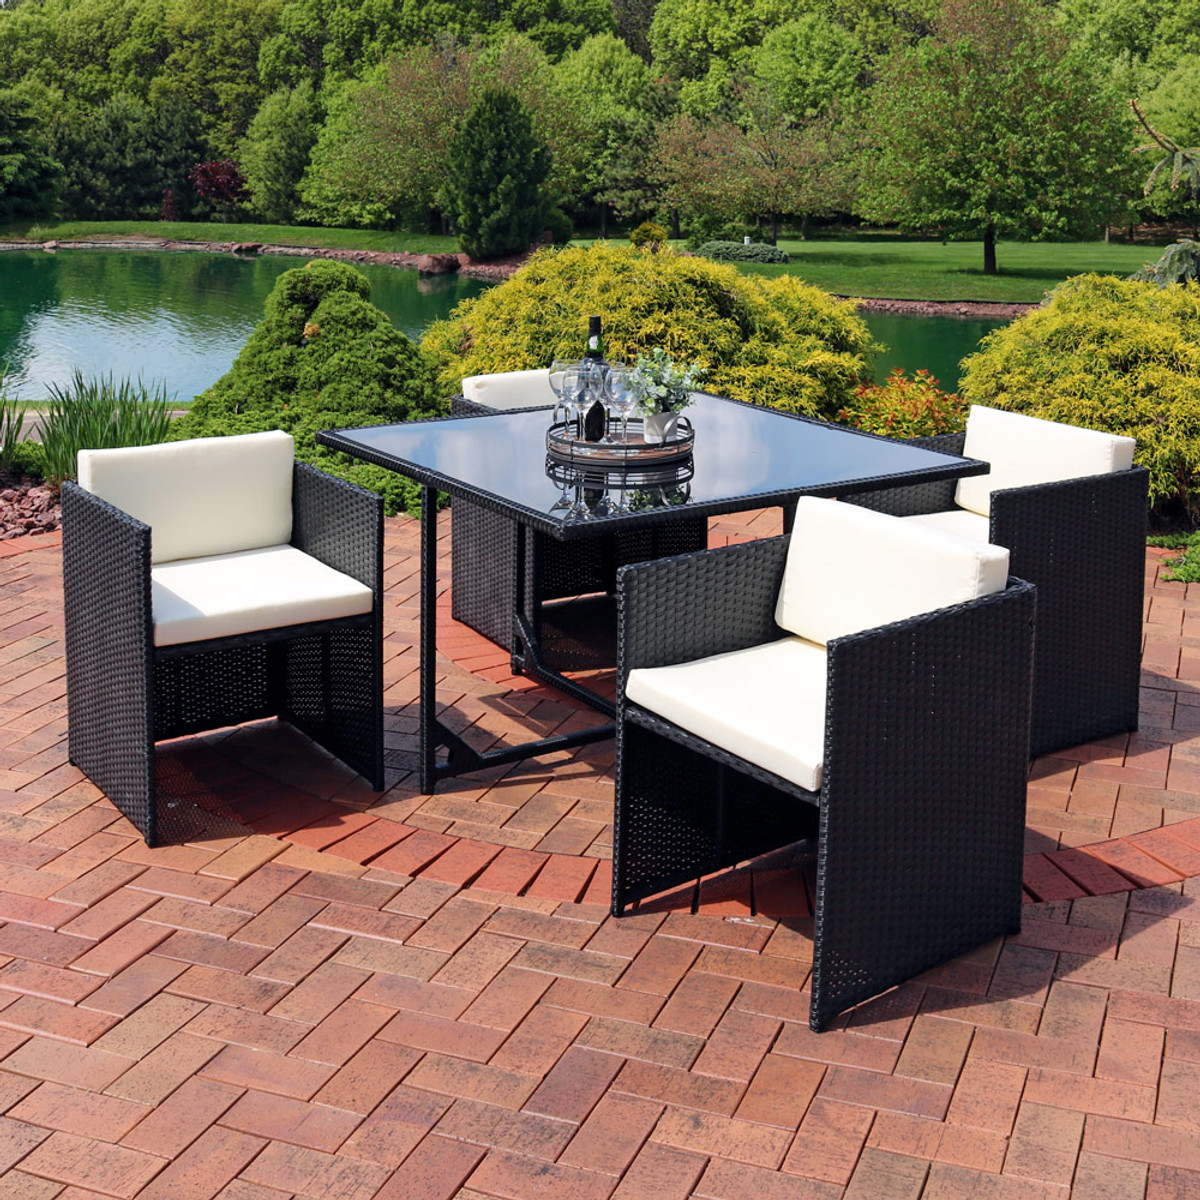 Sunnydaze Miliani 5 Piece Outdoor Dining Patio Furniture Set With Black  Wicker Rattan And Beige Cushions